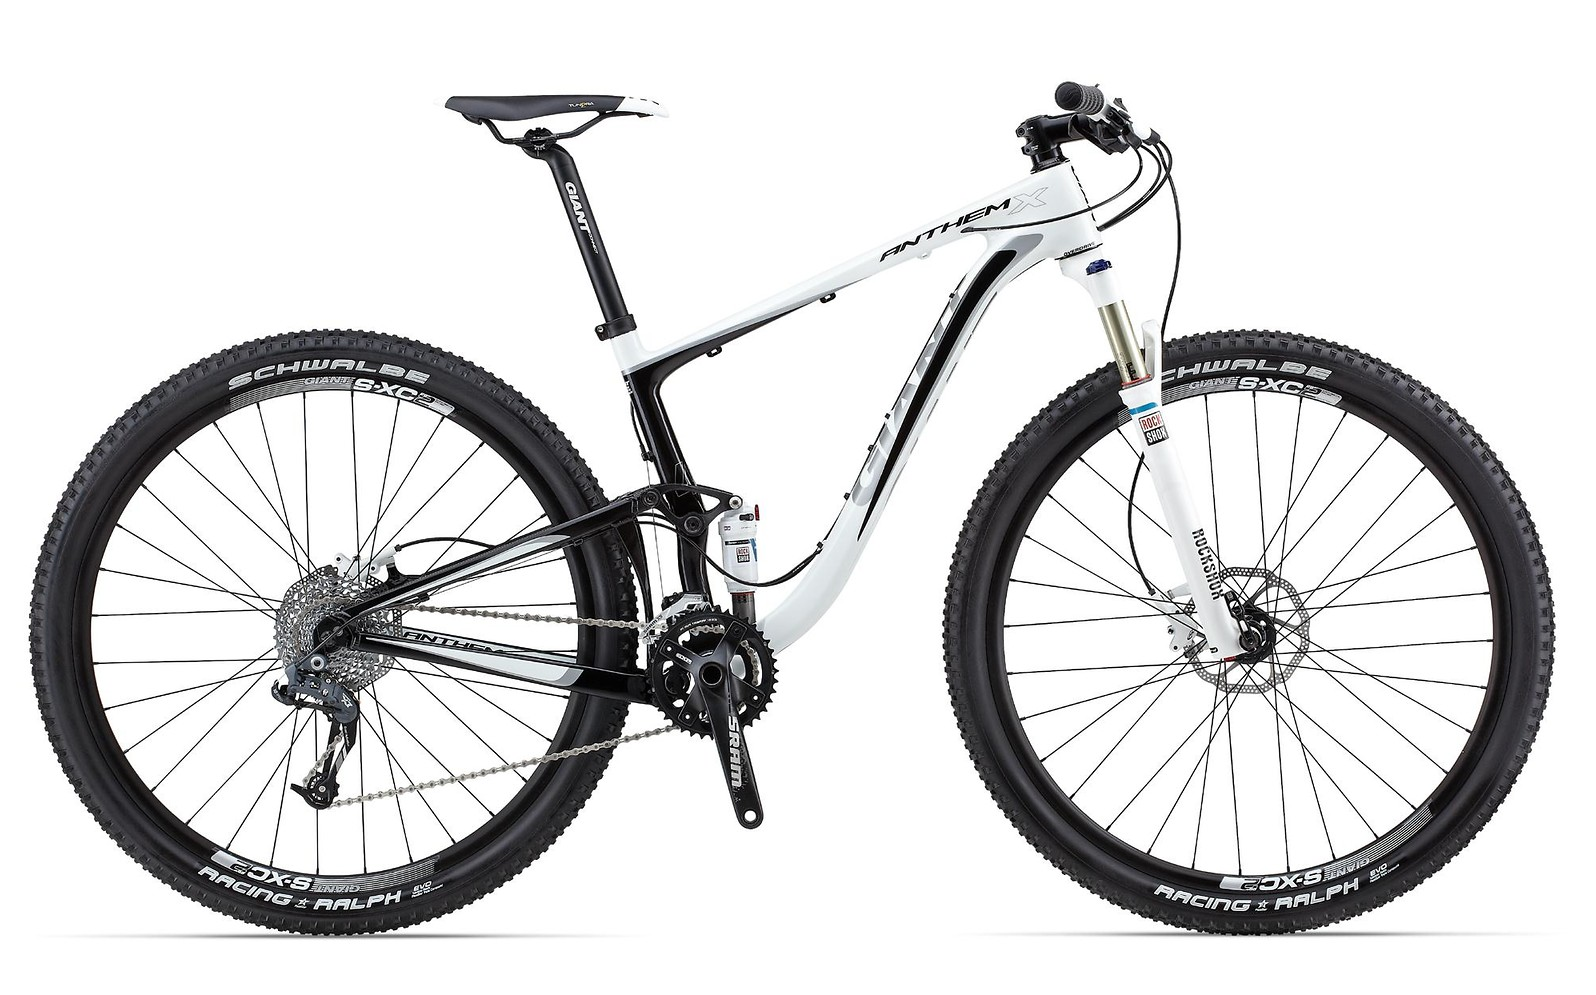 2013 Giant Anthem X Advanced 29er 2 Bike 2013 Anthem_X_Advanced_29er_2